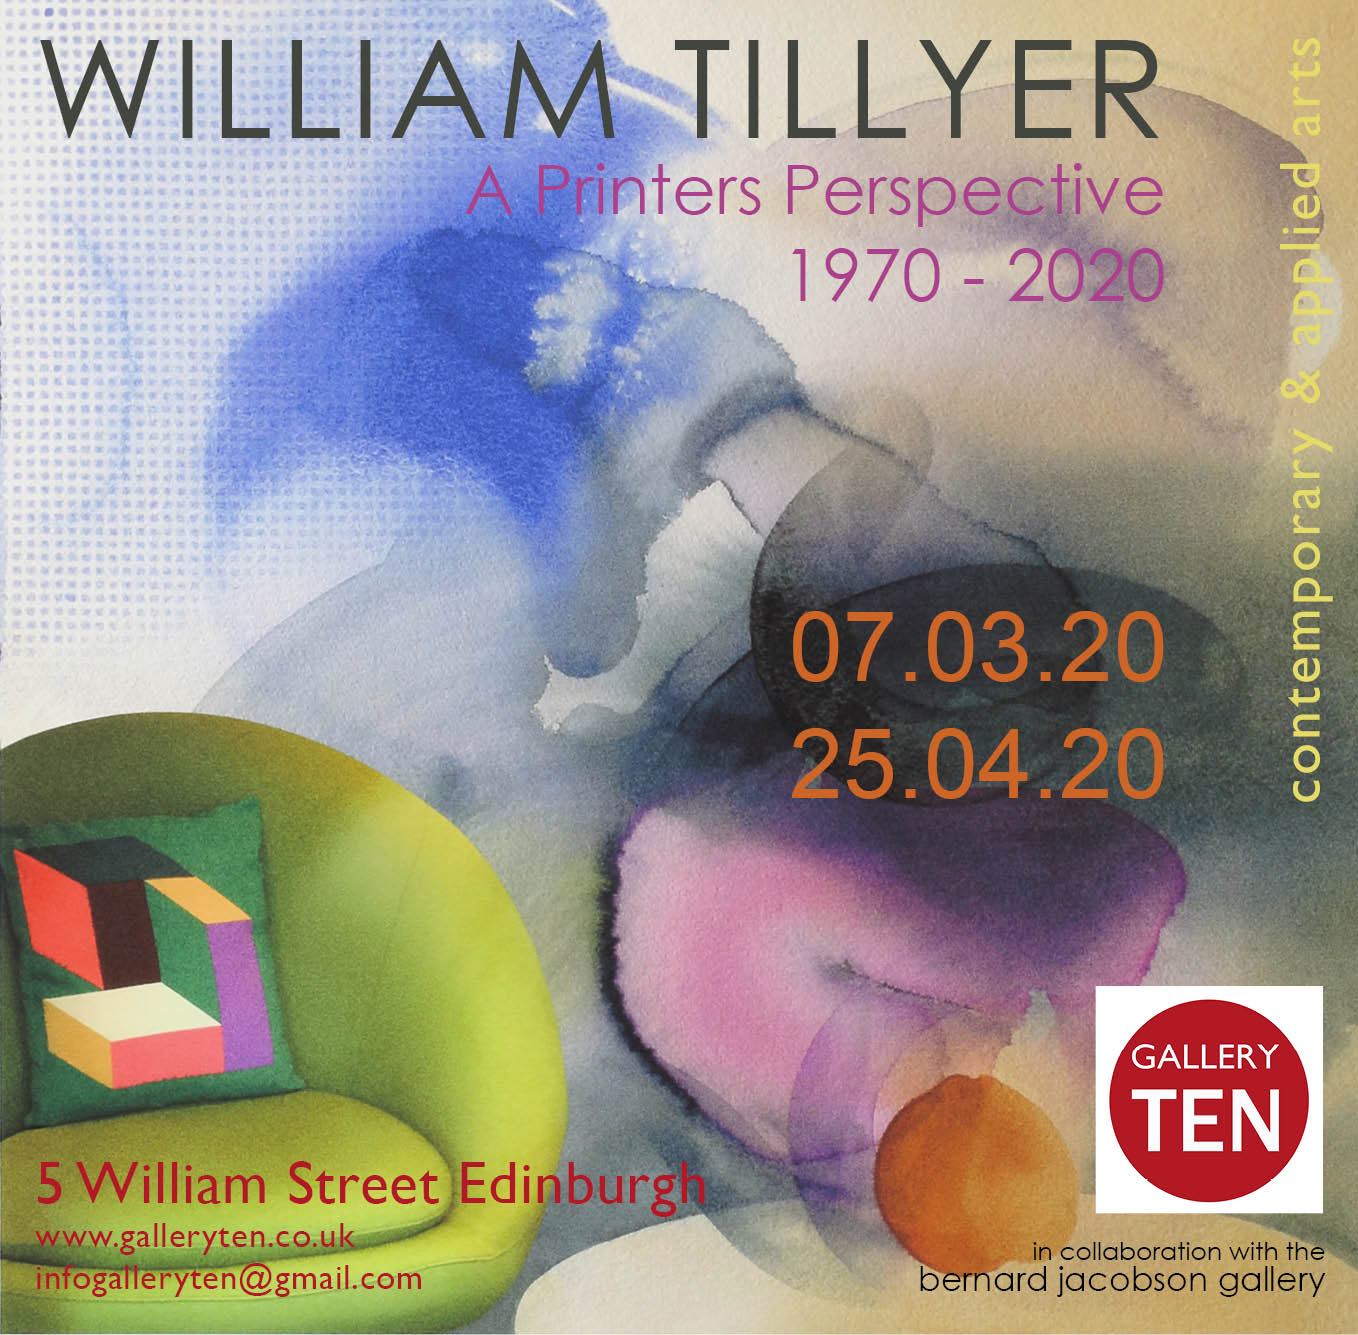 William Tillyer Exhibition Gallery Ten March 2020